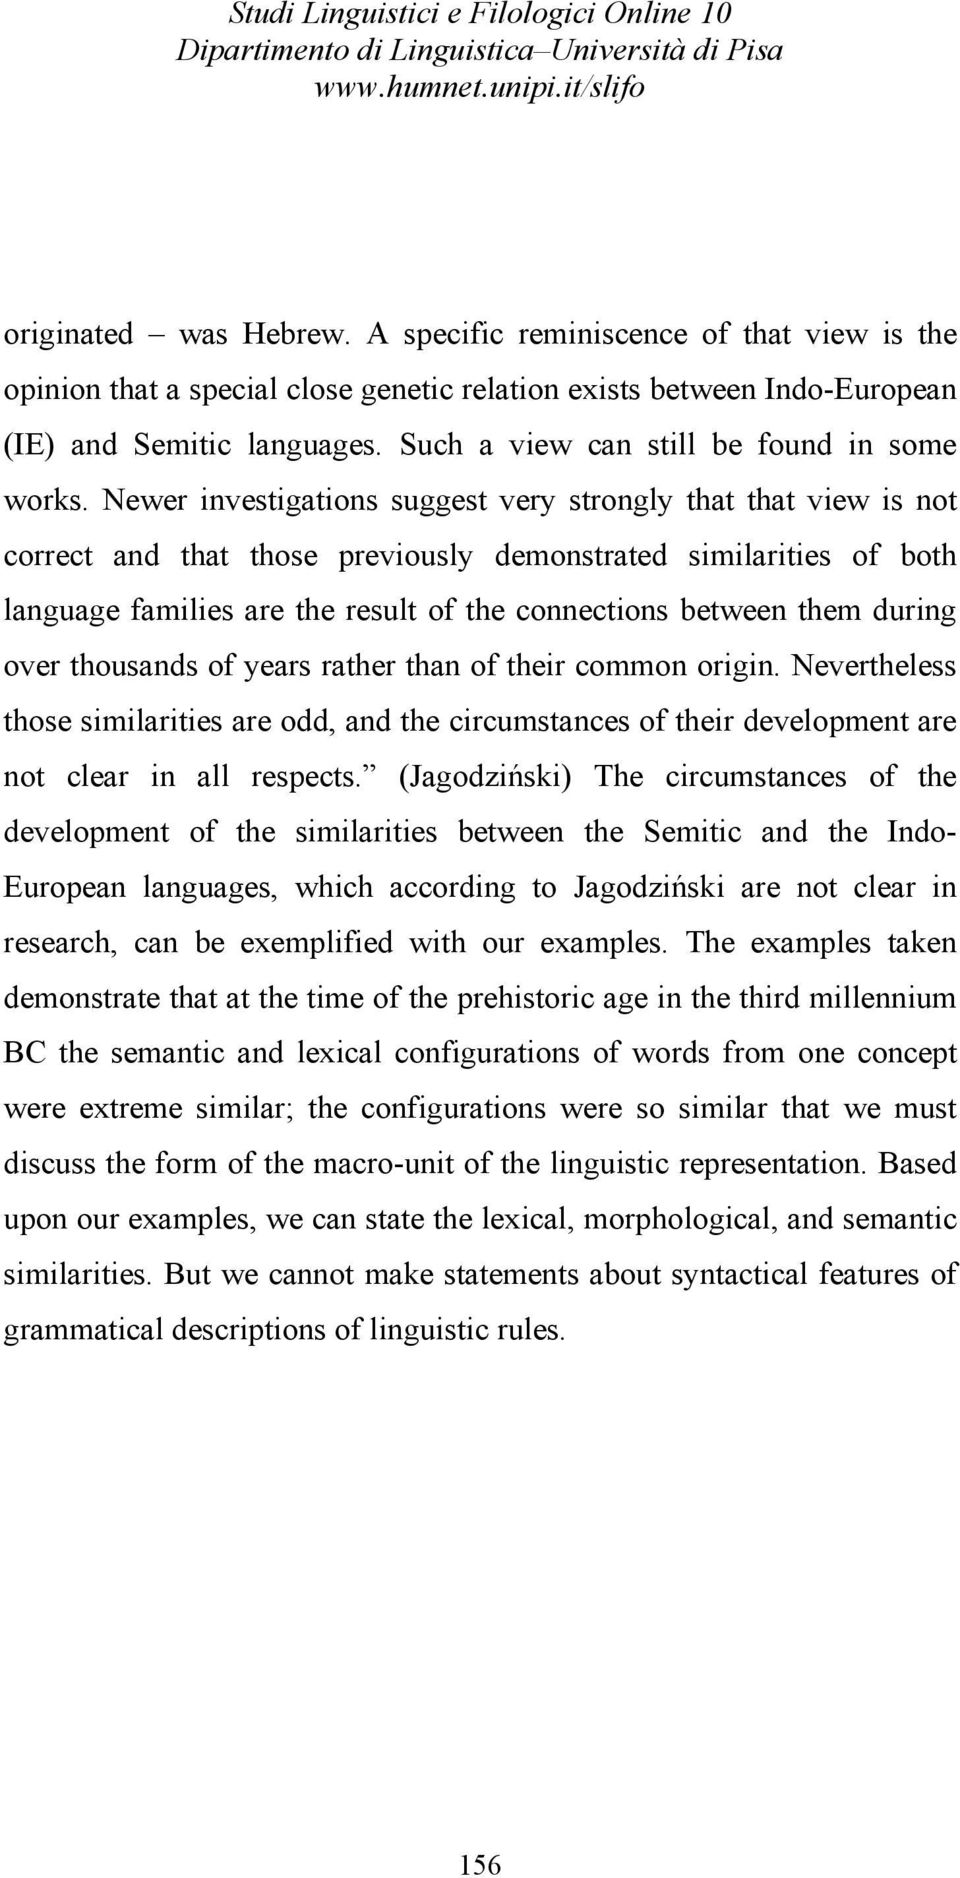 Newer investigations suggest very strongly that that view is not correct and that those previously demonstrated similarities of both language families are the result of the connections between them